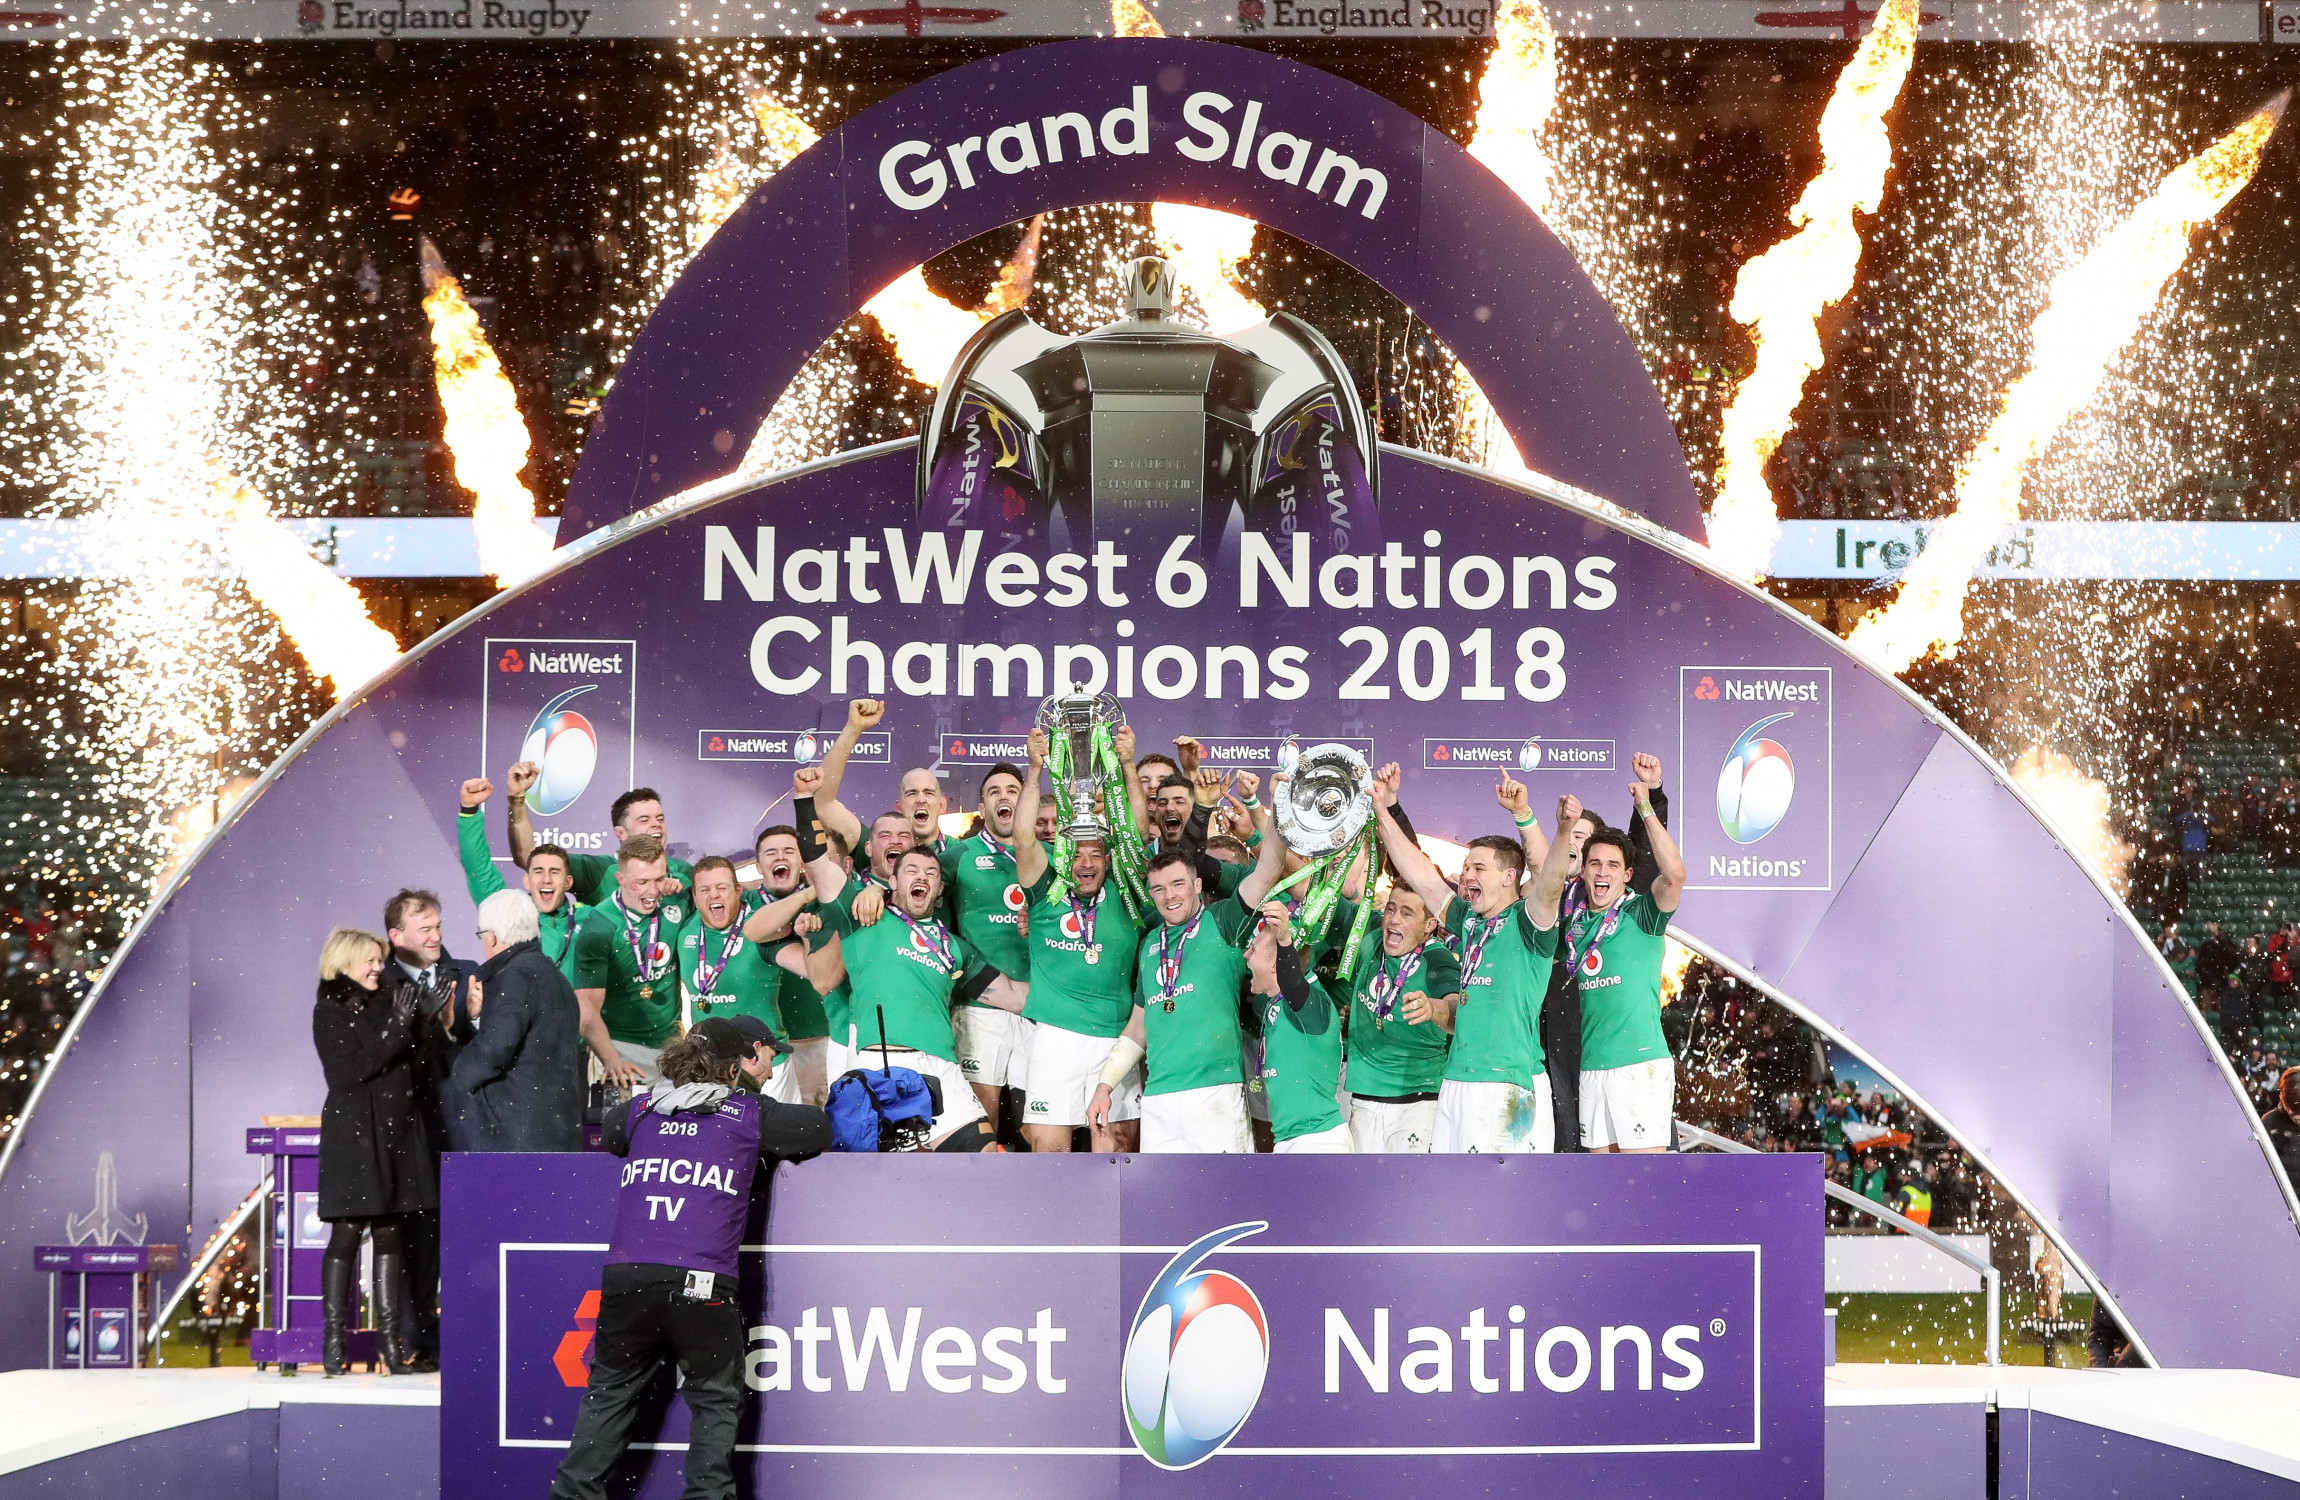 Ireland team celebrate our finest Grand Slam